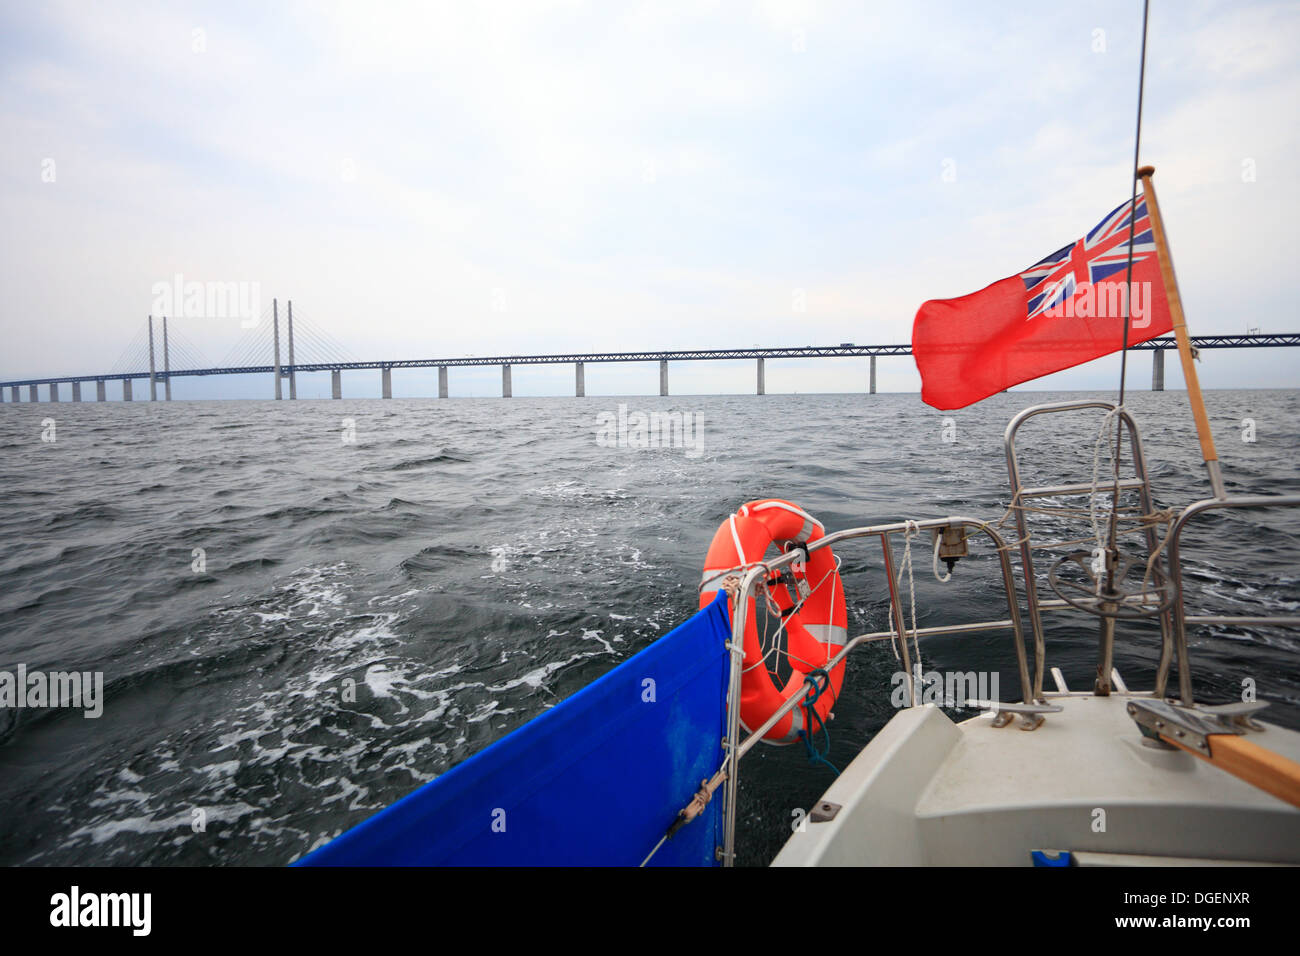 Landmark danish oresund bridge- view from sailboat with british flag. Cruise and tourism. Stock Photo